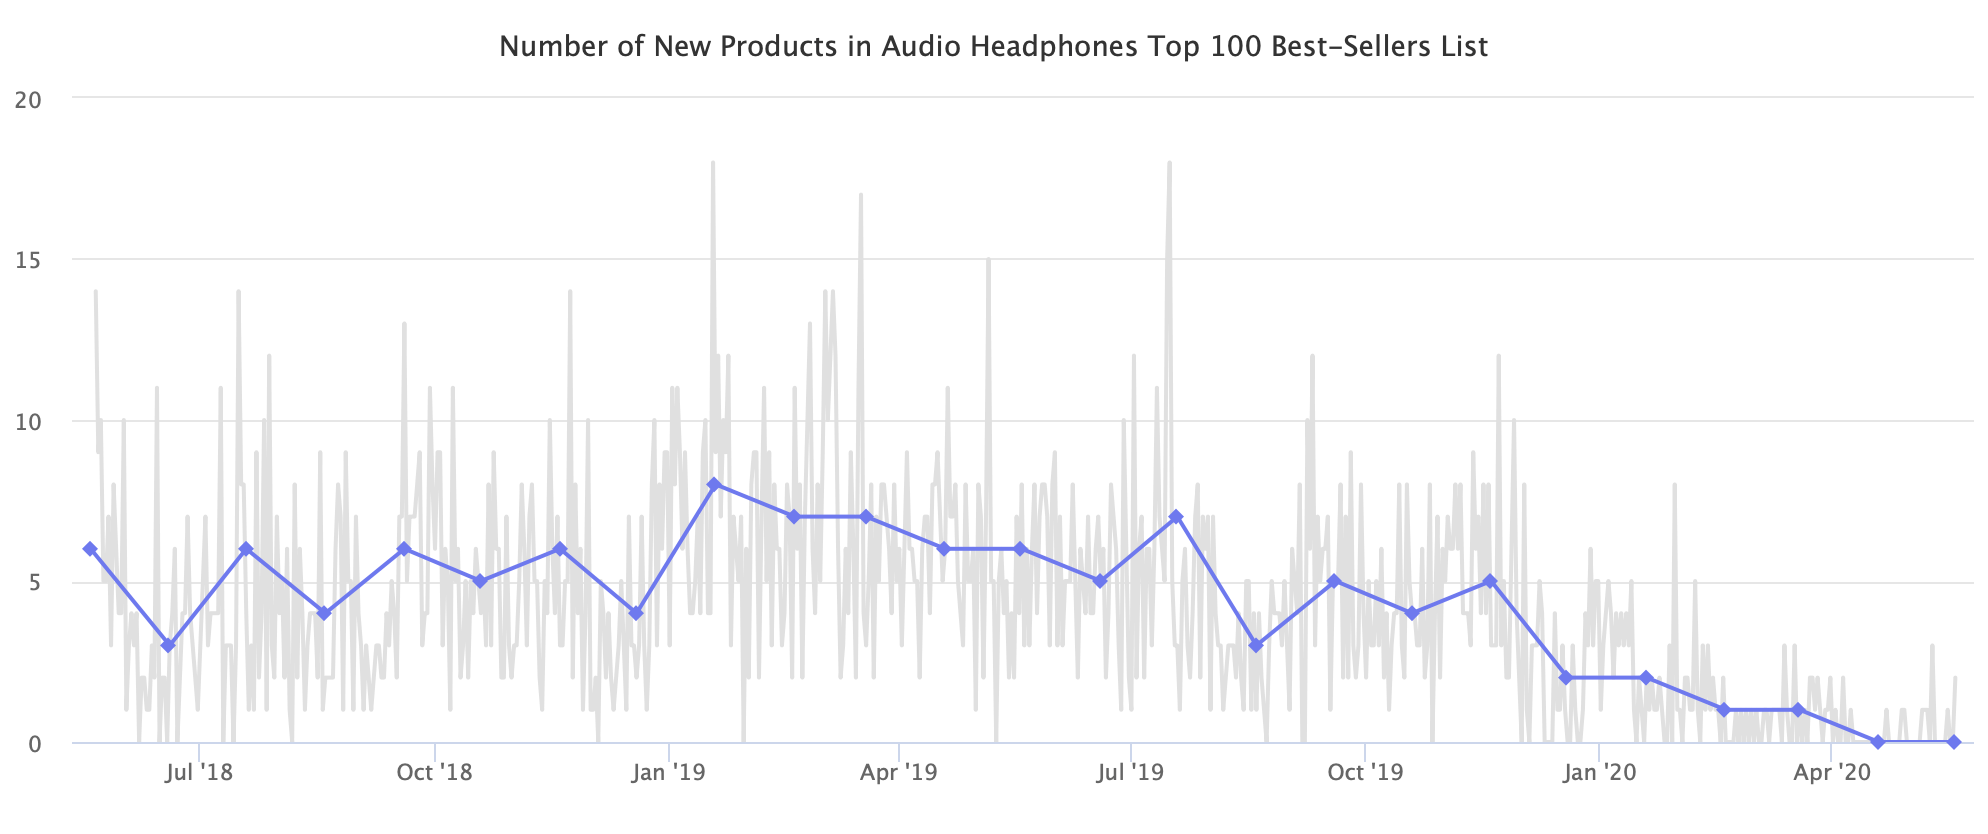 Number of New Products in Audio Headphones Top 100 Best-Sellers List